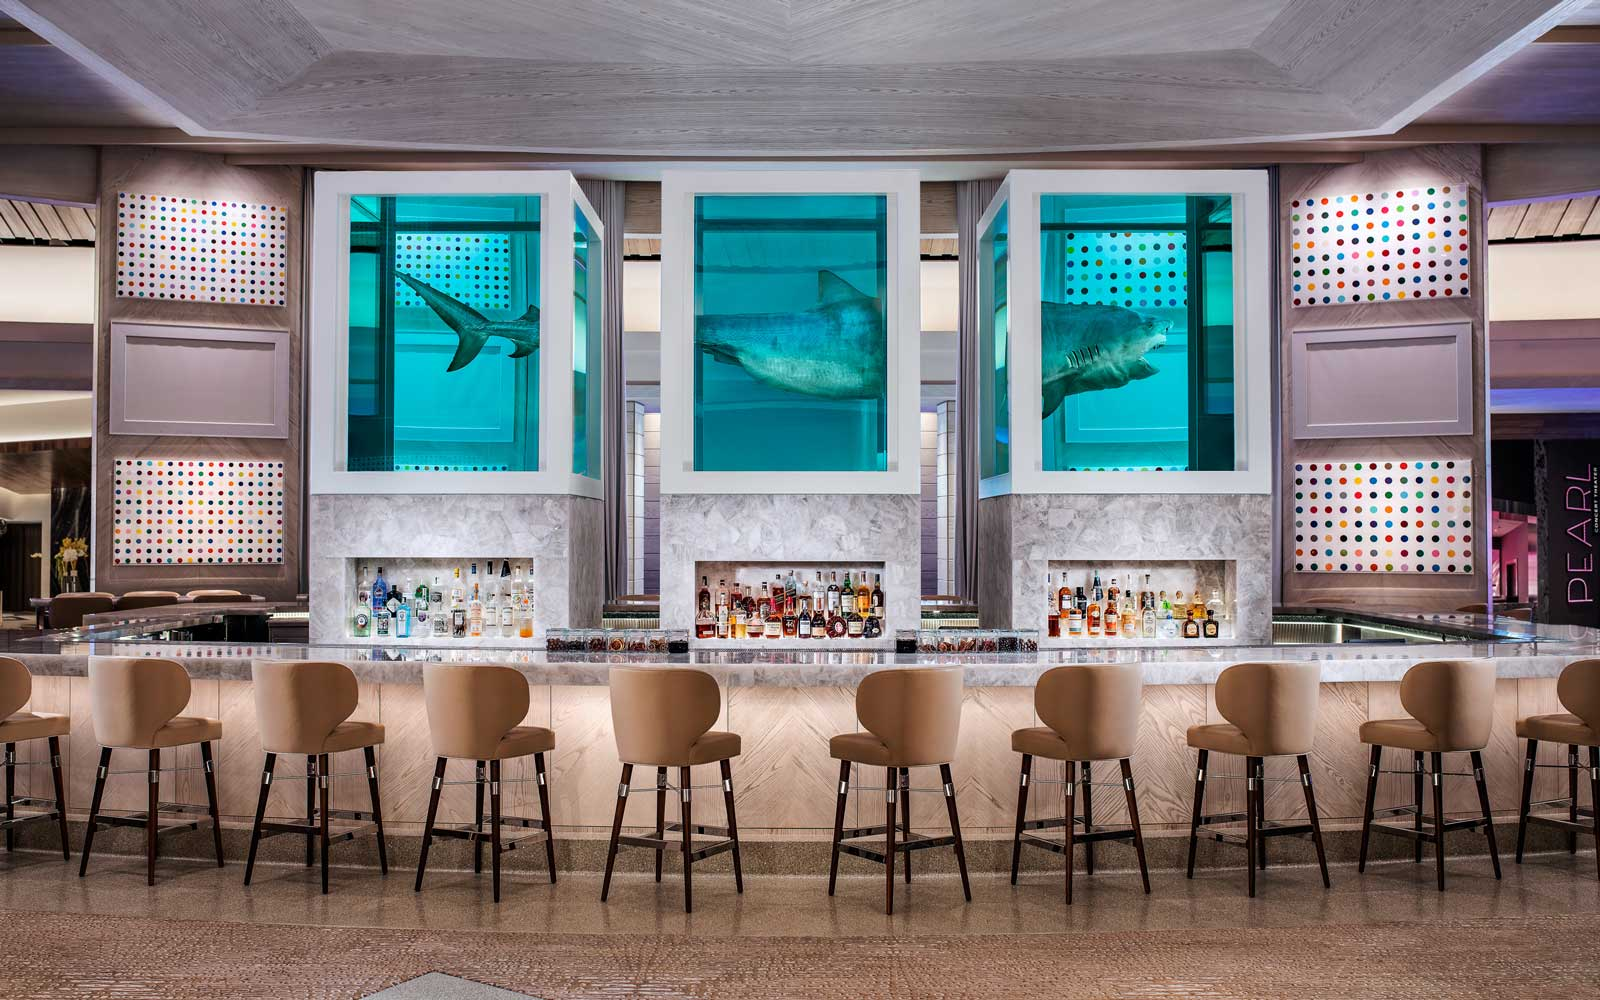 Unknown bar featuring Damien Hirst's The Unknown (Explored, Explained, Exploded), and his iconic Spot paintings debuts at Palms Casino Resort.